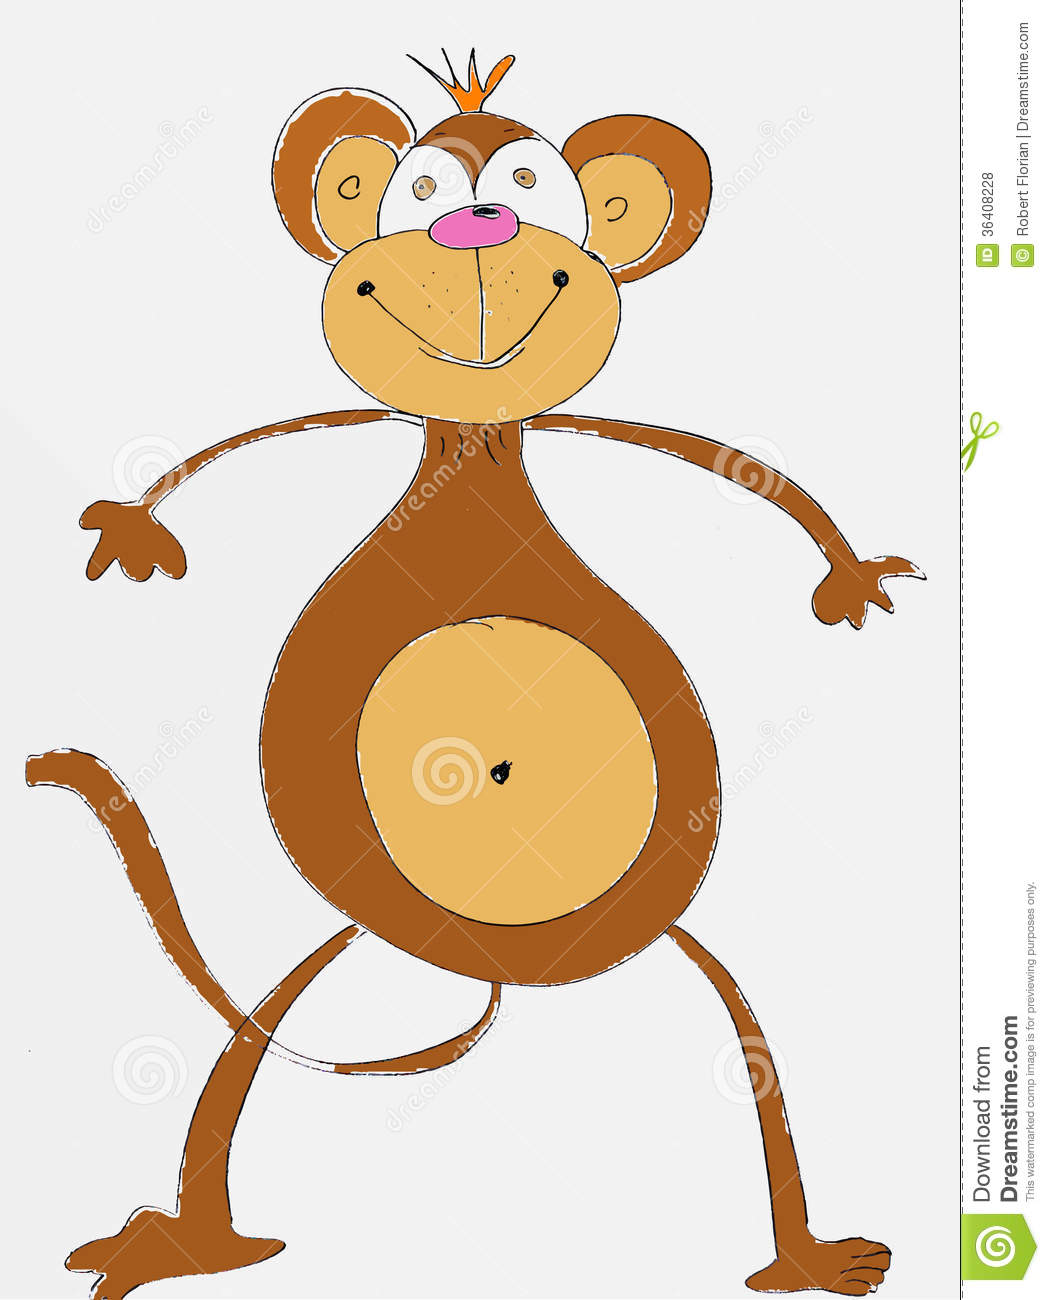 Kids Pencil Drawing Of A Monkey Royalty Free Stock Photos - Image ...